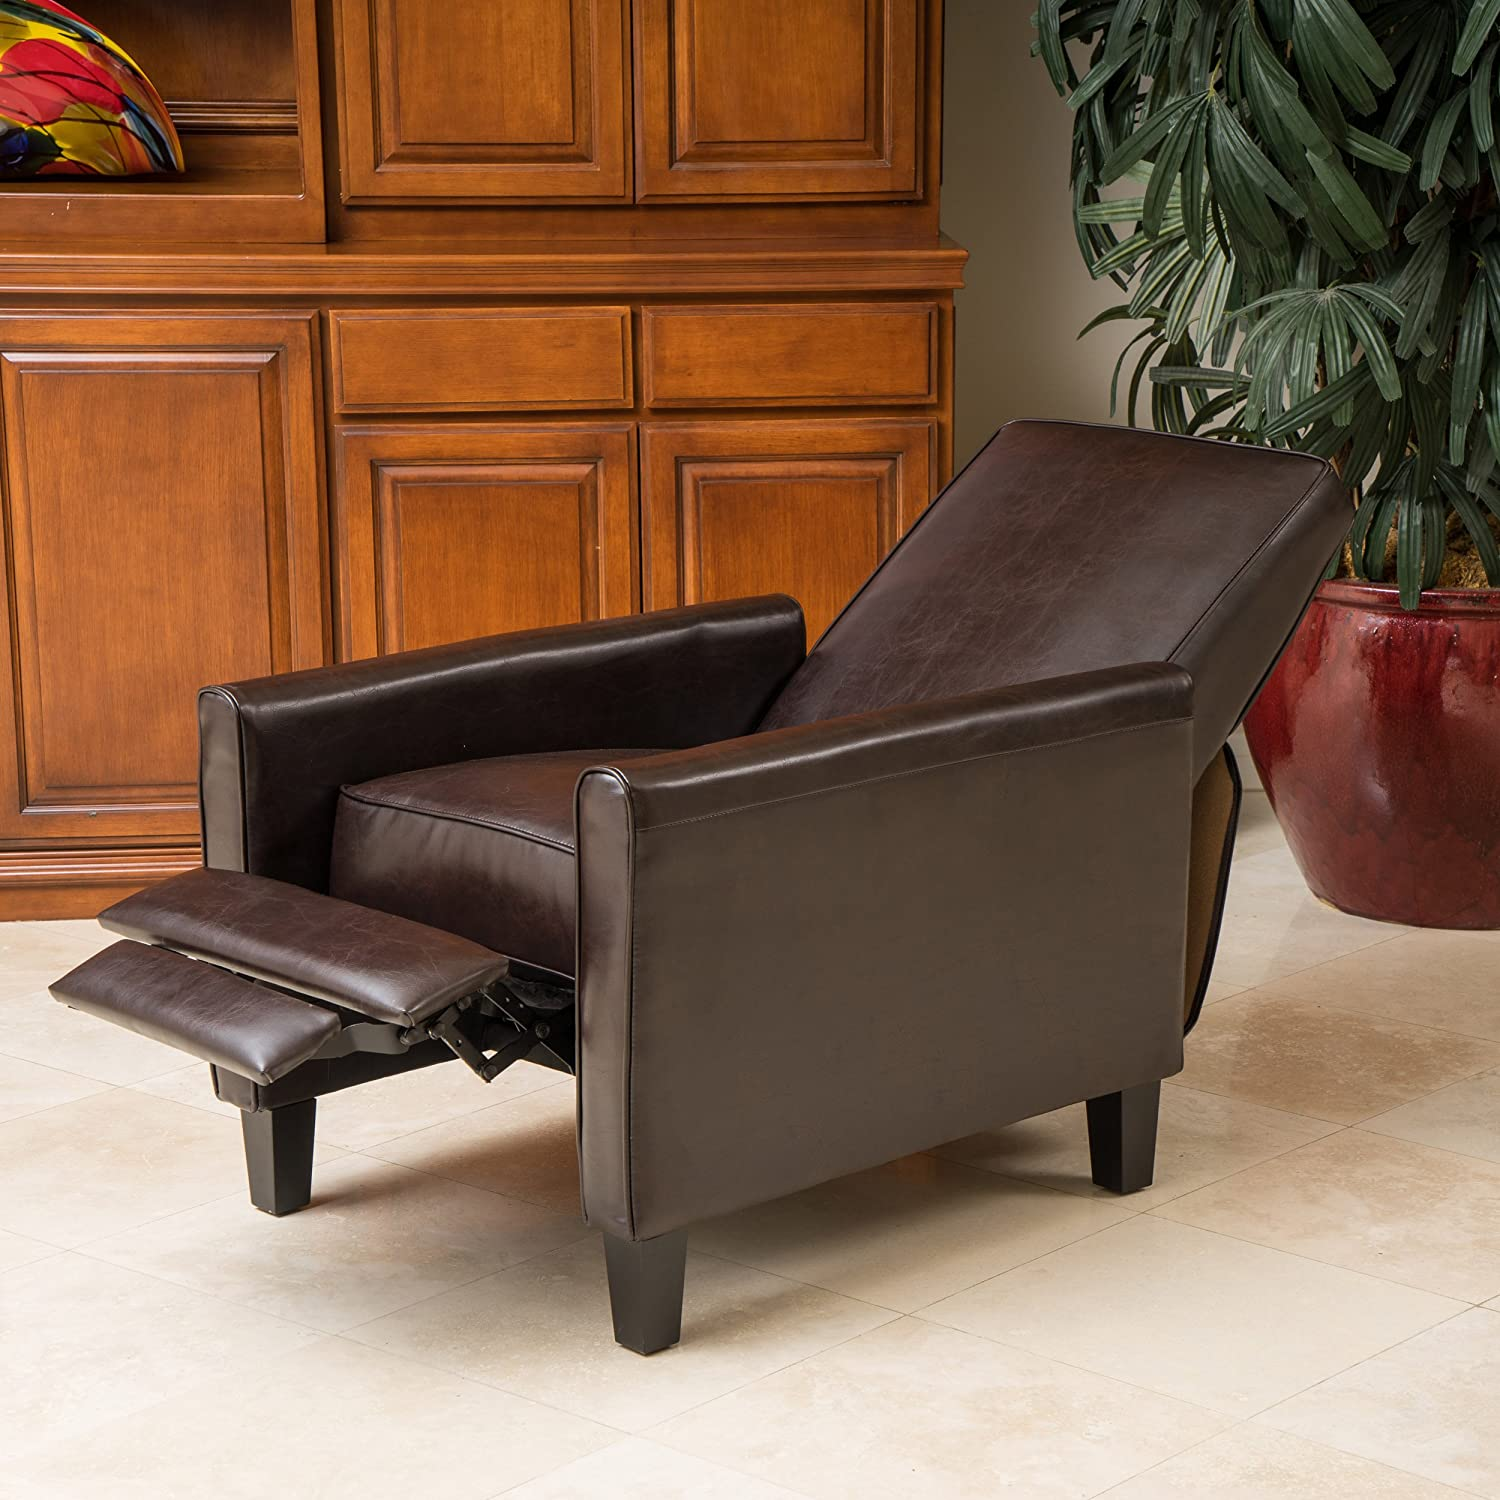 Club chair recliner - Amazon Com Lucas Brown Leather Modern Sleek Recliner Club Chair Kitchen Dining